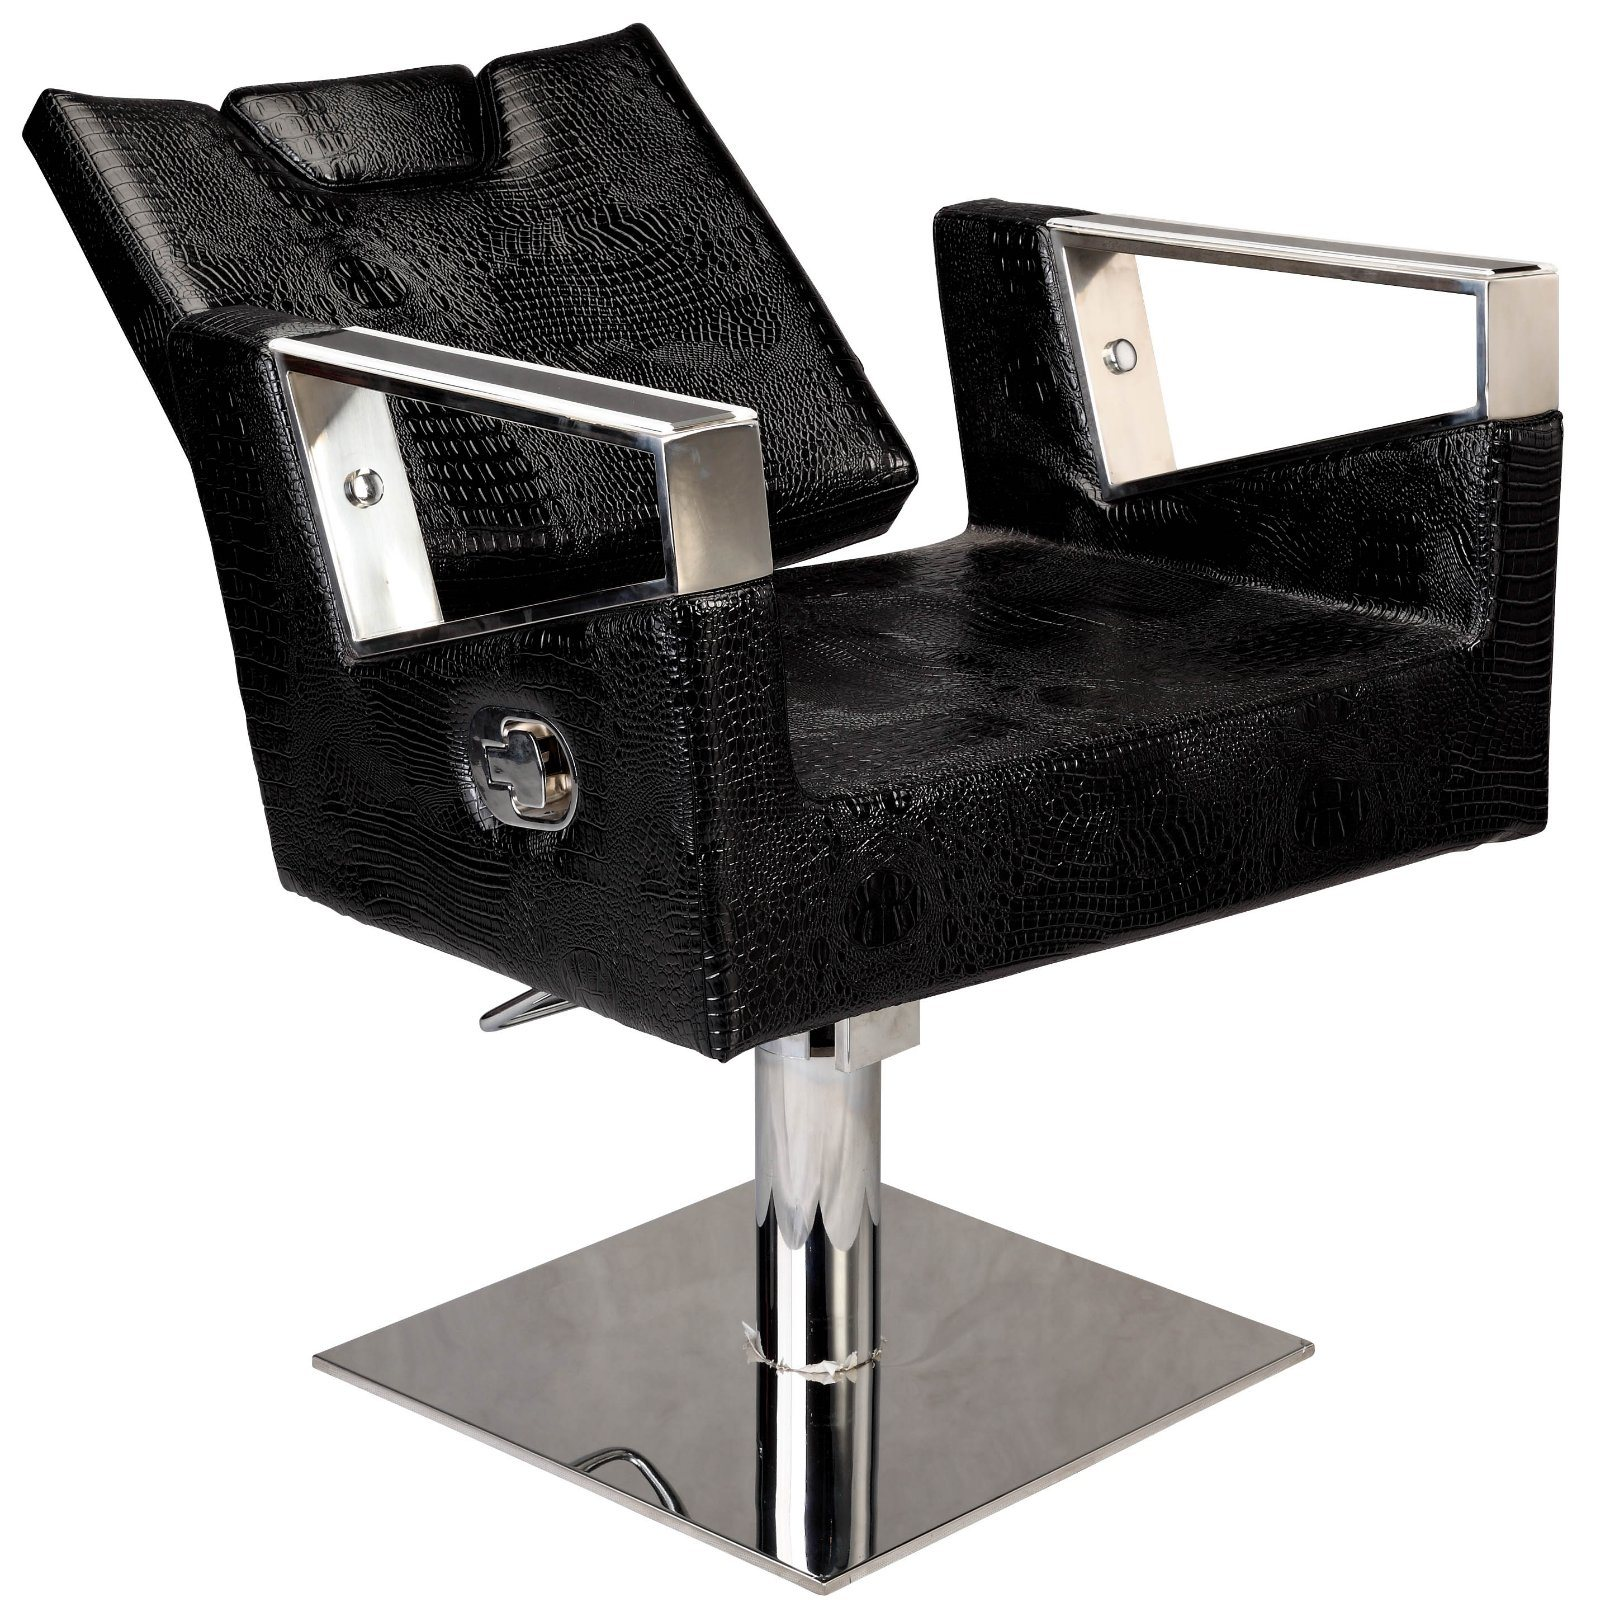 Reclining Barber Shop Salon Chair Styling Chair My-007-48